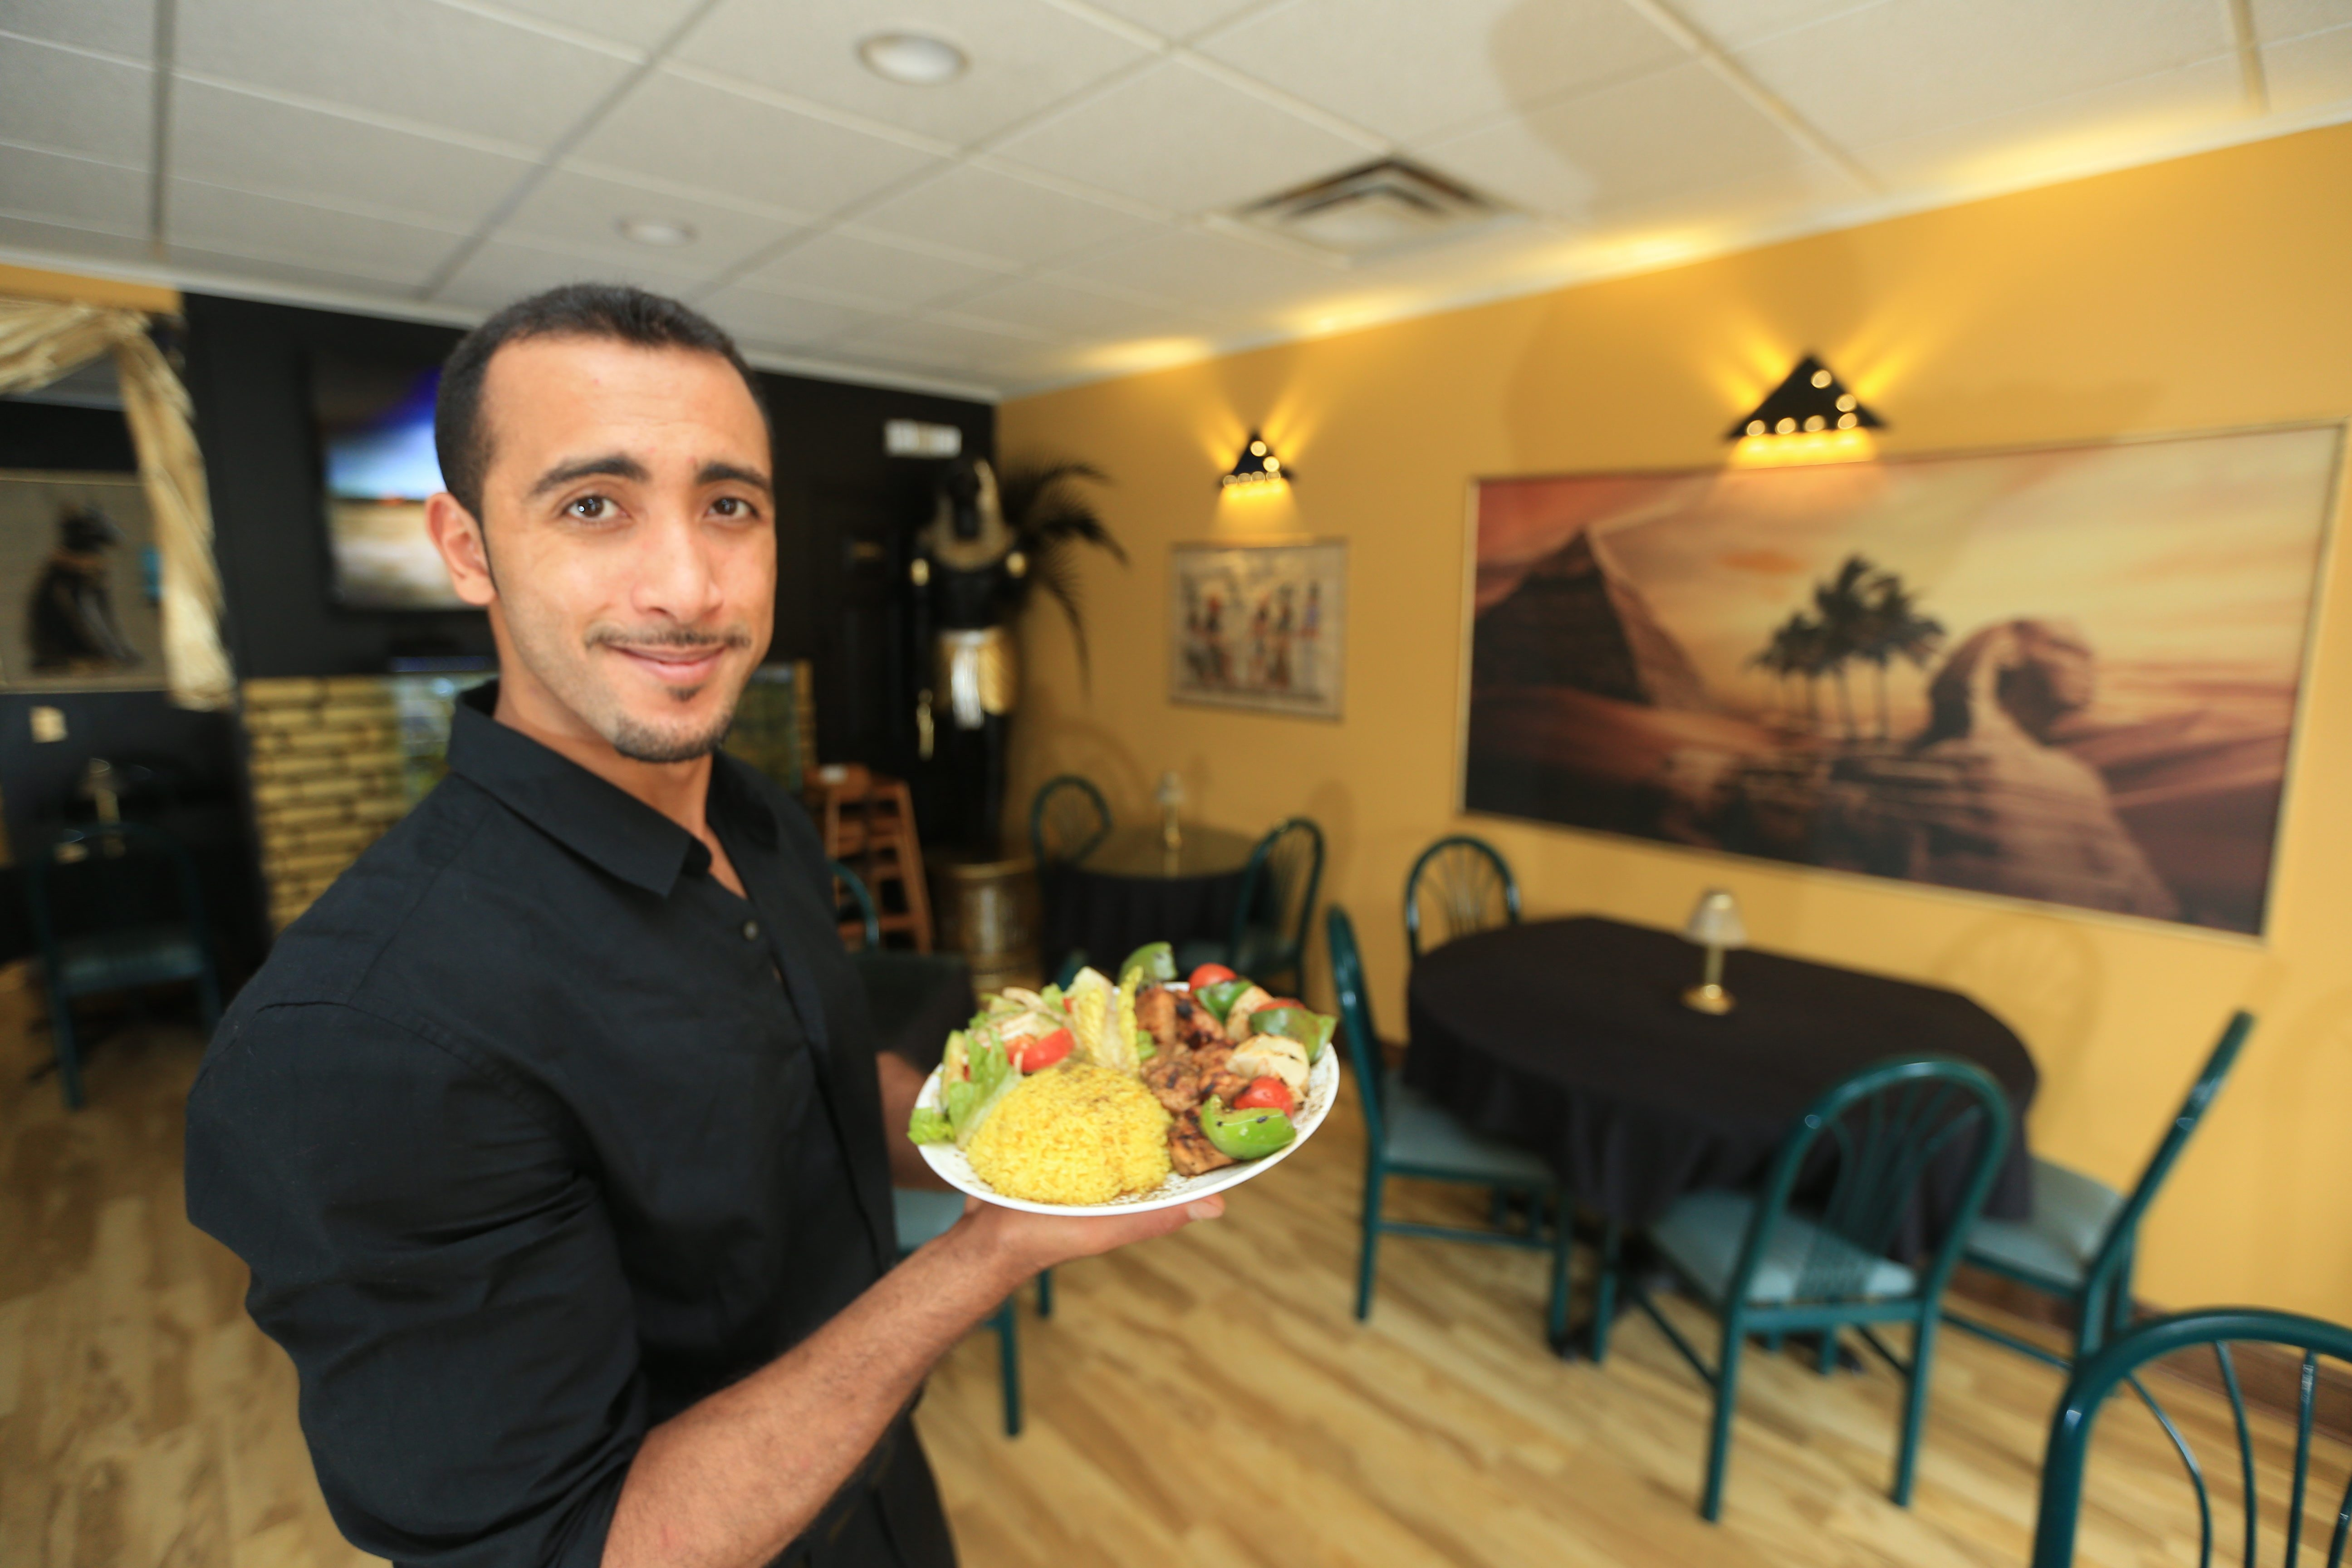 Amr Agwa, the proprietor of Pita Brothers Mediterranean Grill in Niagara Falls, serves a chicken shish kabob platter. Hummus is one of the best options at Pita Brothers, but the menu has much to offer.